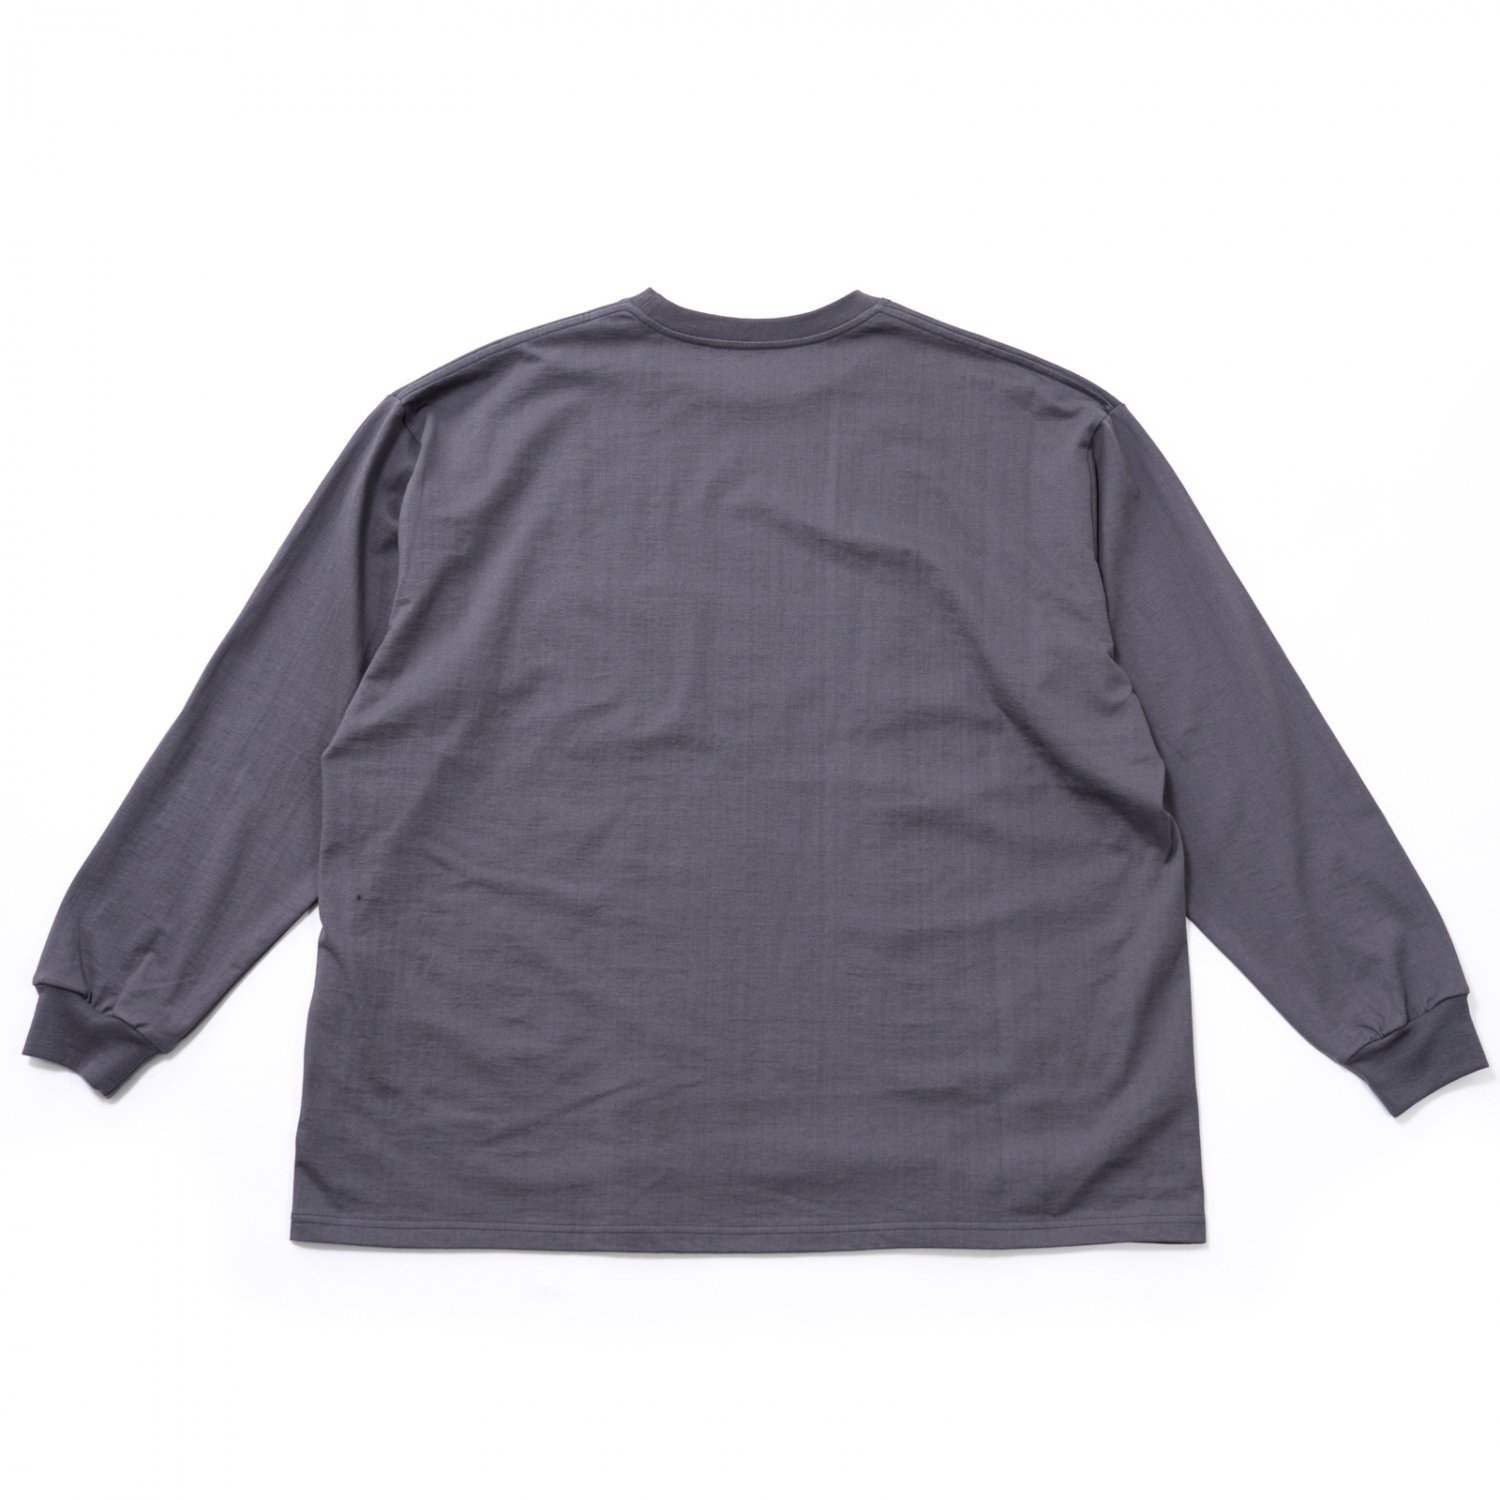 Graphpaper * L/S Oversized Pocket Tee * Gray